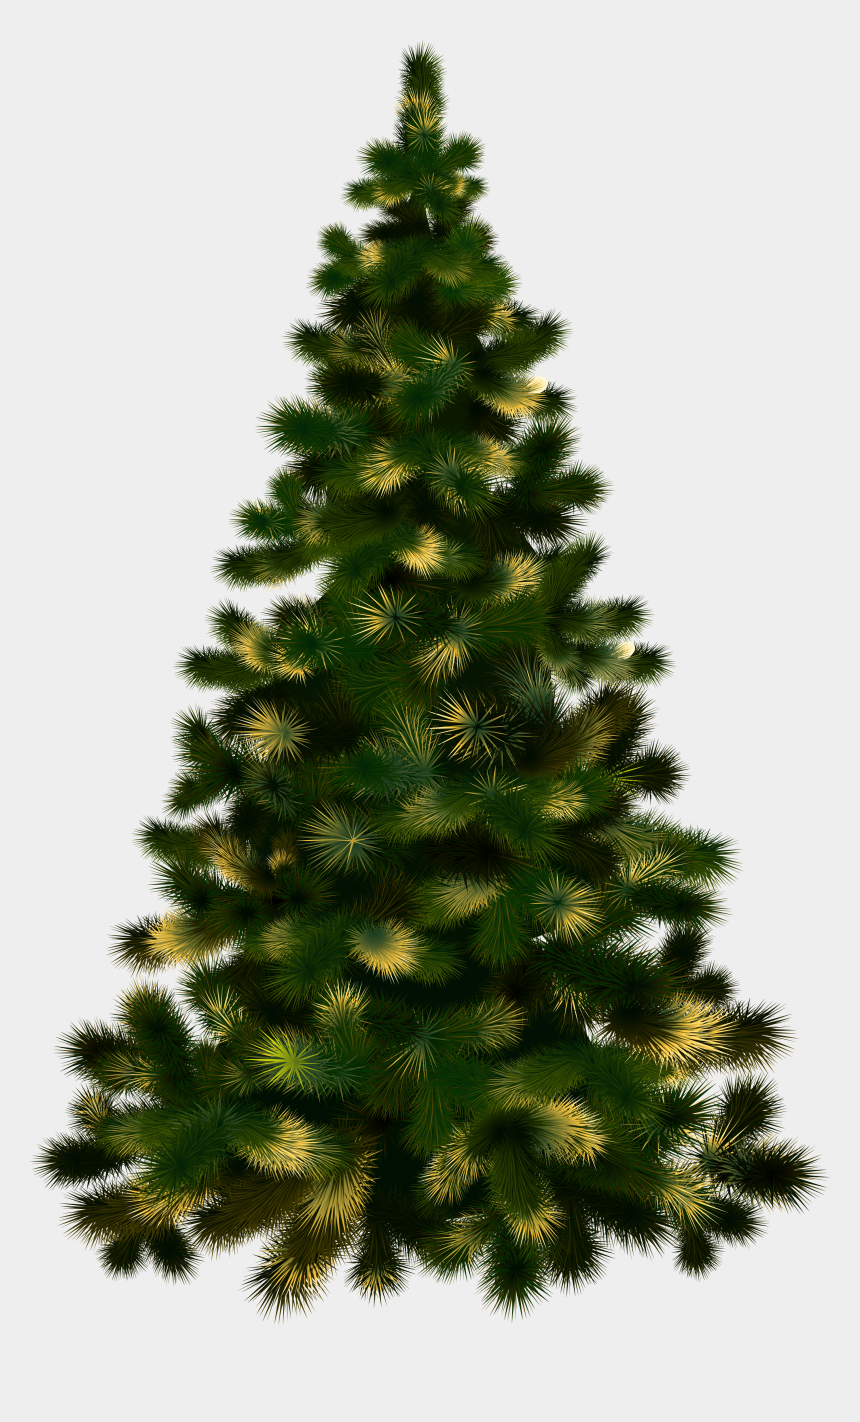 Christmas Tree Clipart Transparent Background.Christmas Tree Without Lights Christmas Clipart Clips